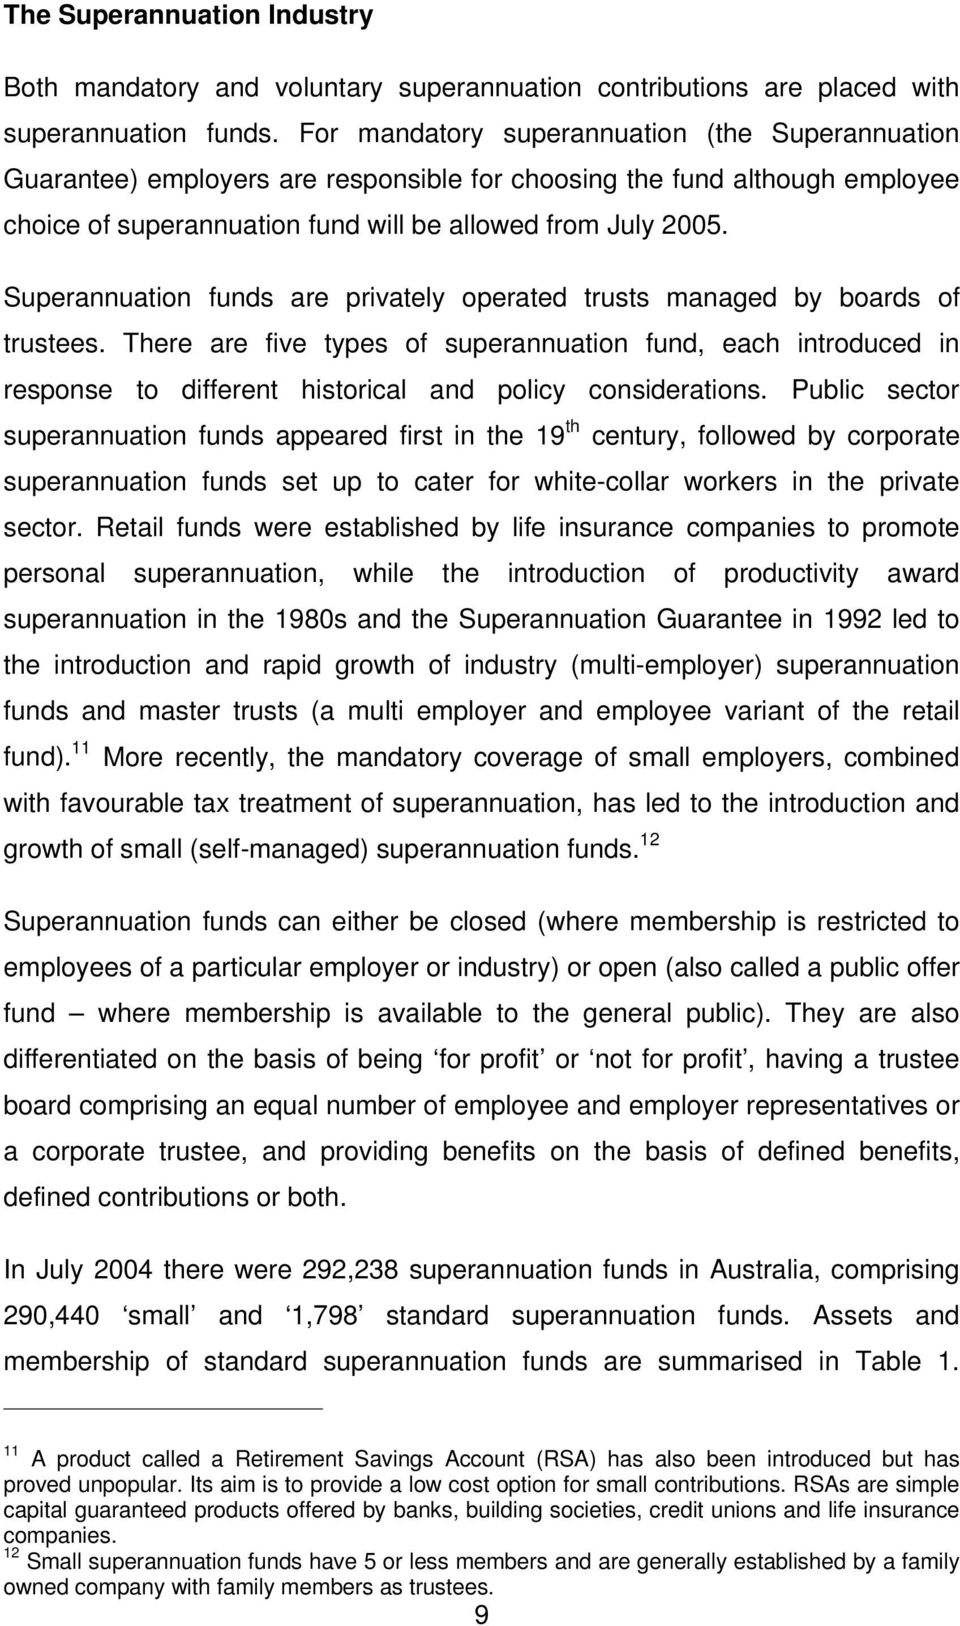 Superannuation funds are privately operated trusts managed by boards of trustees.